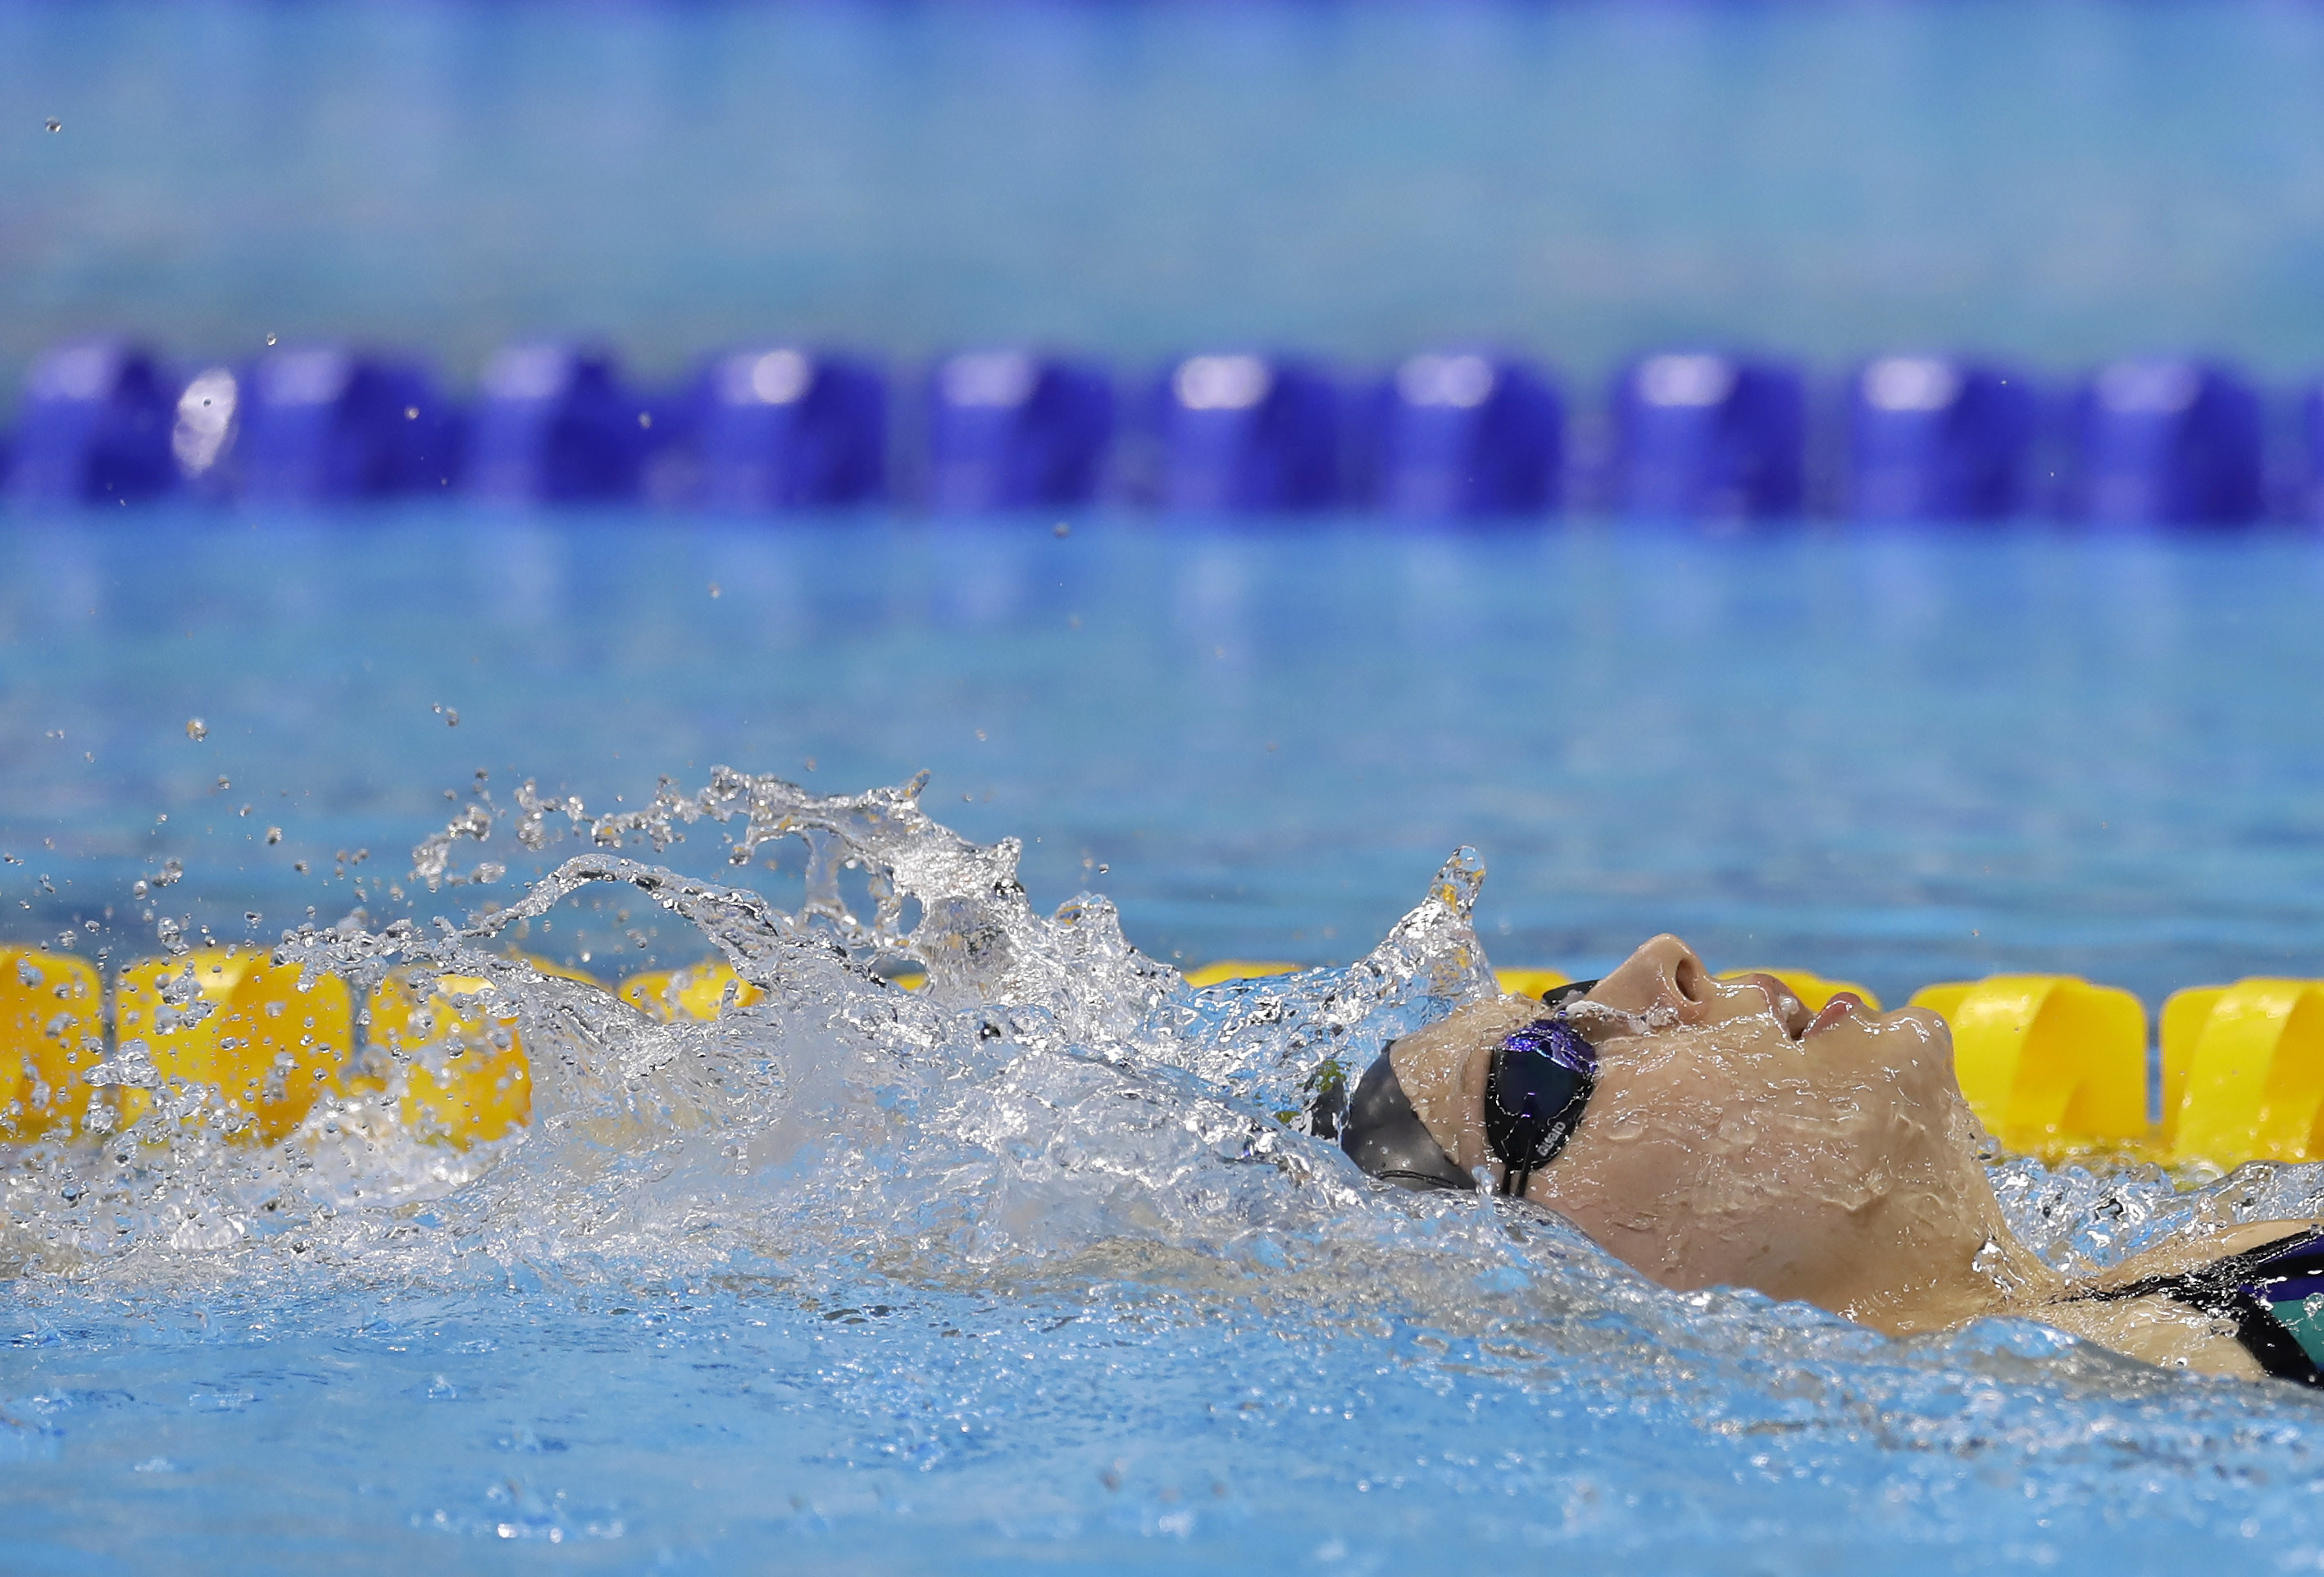 Jessica Long of the U.S. swims during a warm up session before the swimming competitions at the Rio 2016 Paralympic Games in Rio de Janeiro, Brazil, Thursday, Sept. 8, 2016.(AP Photo/Leo Correa)